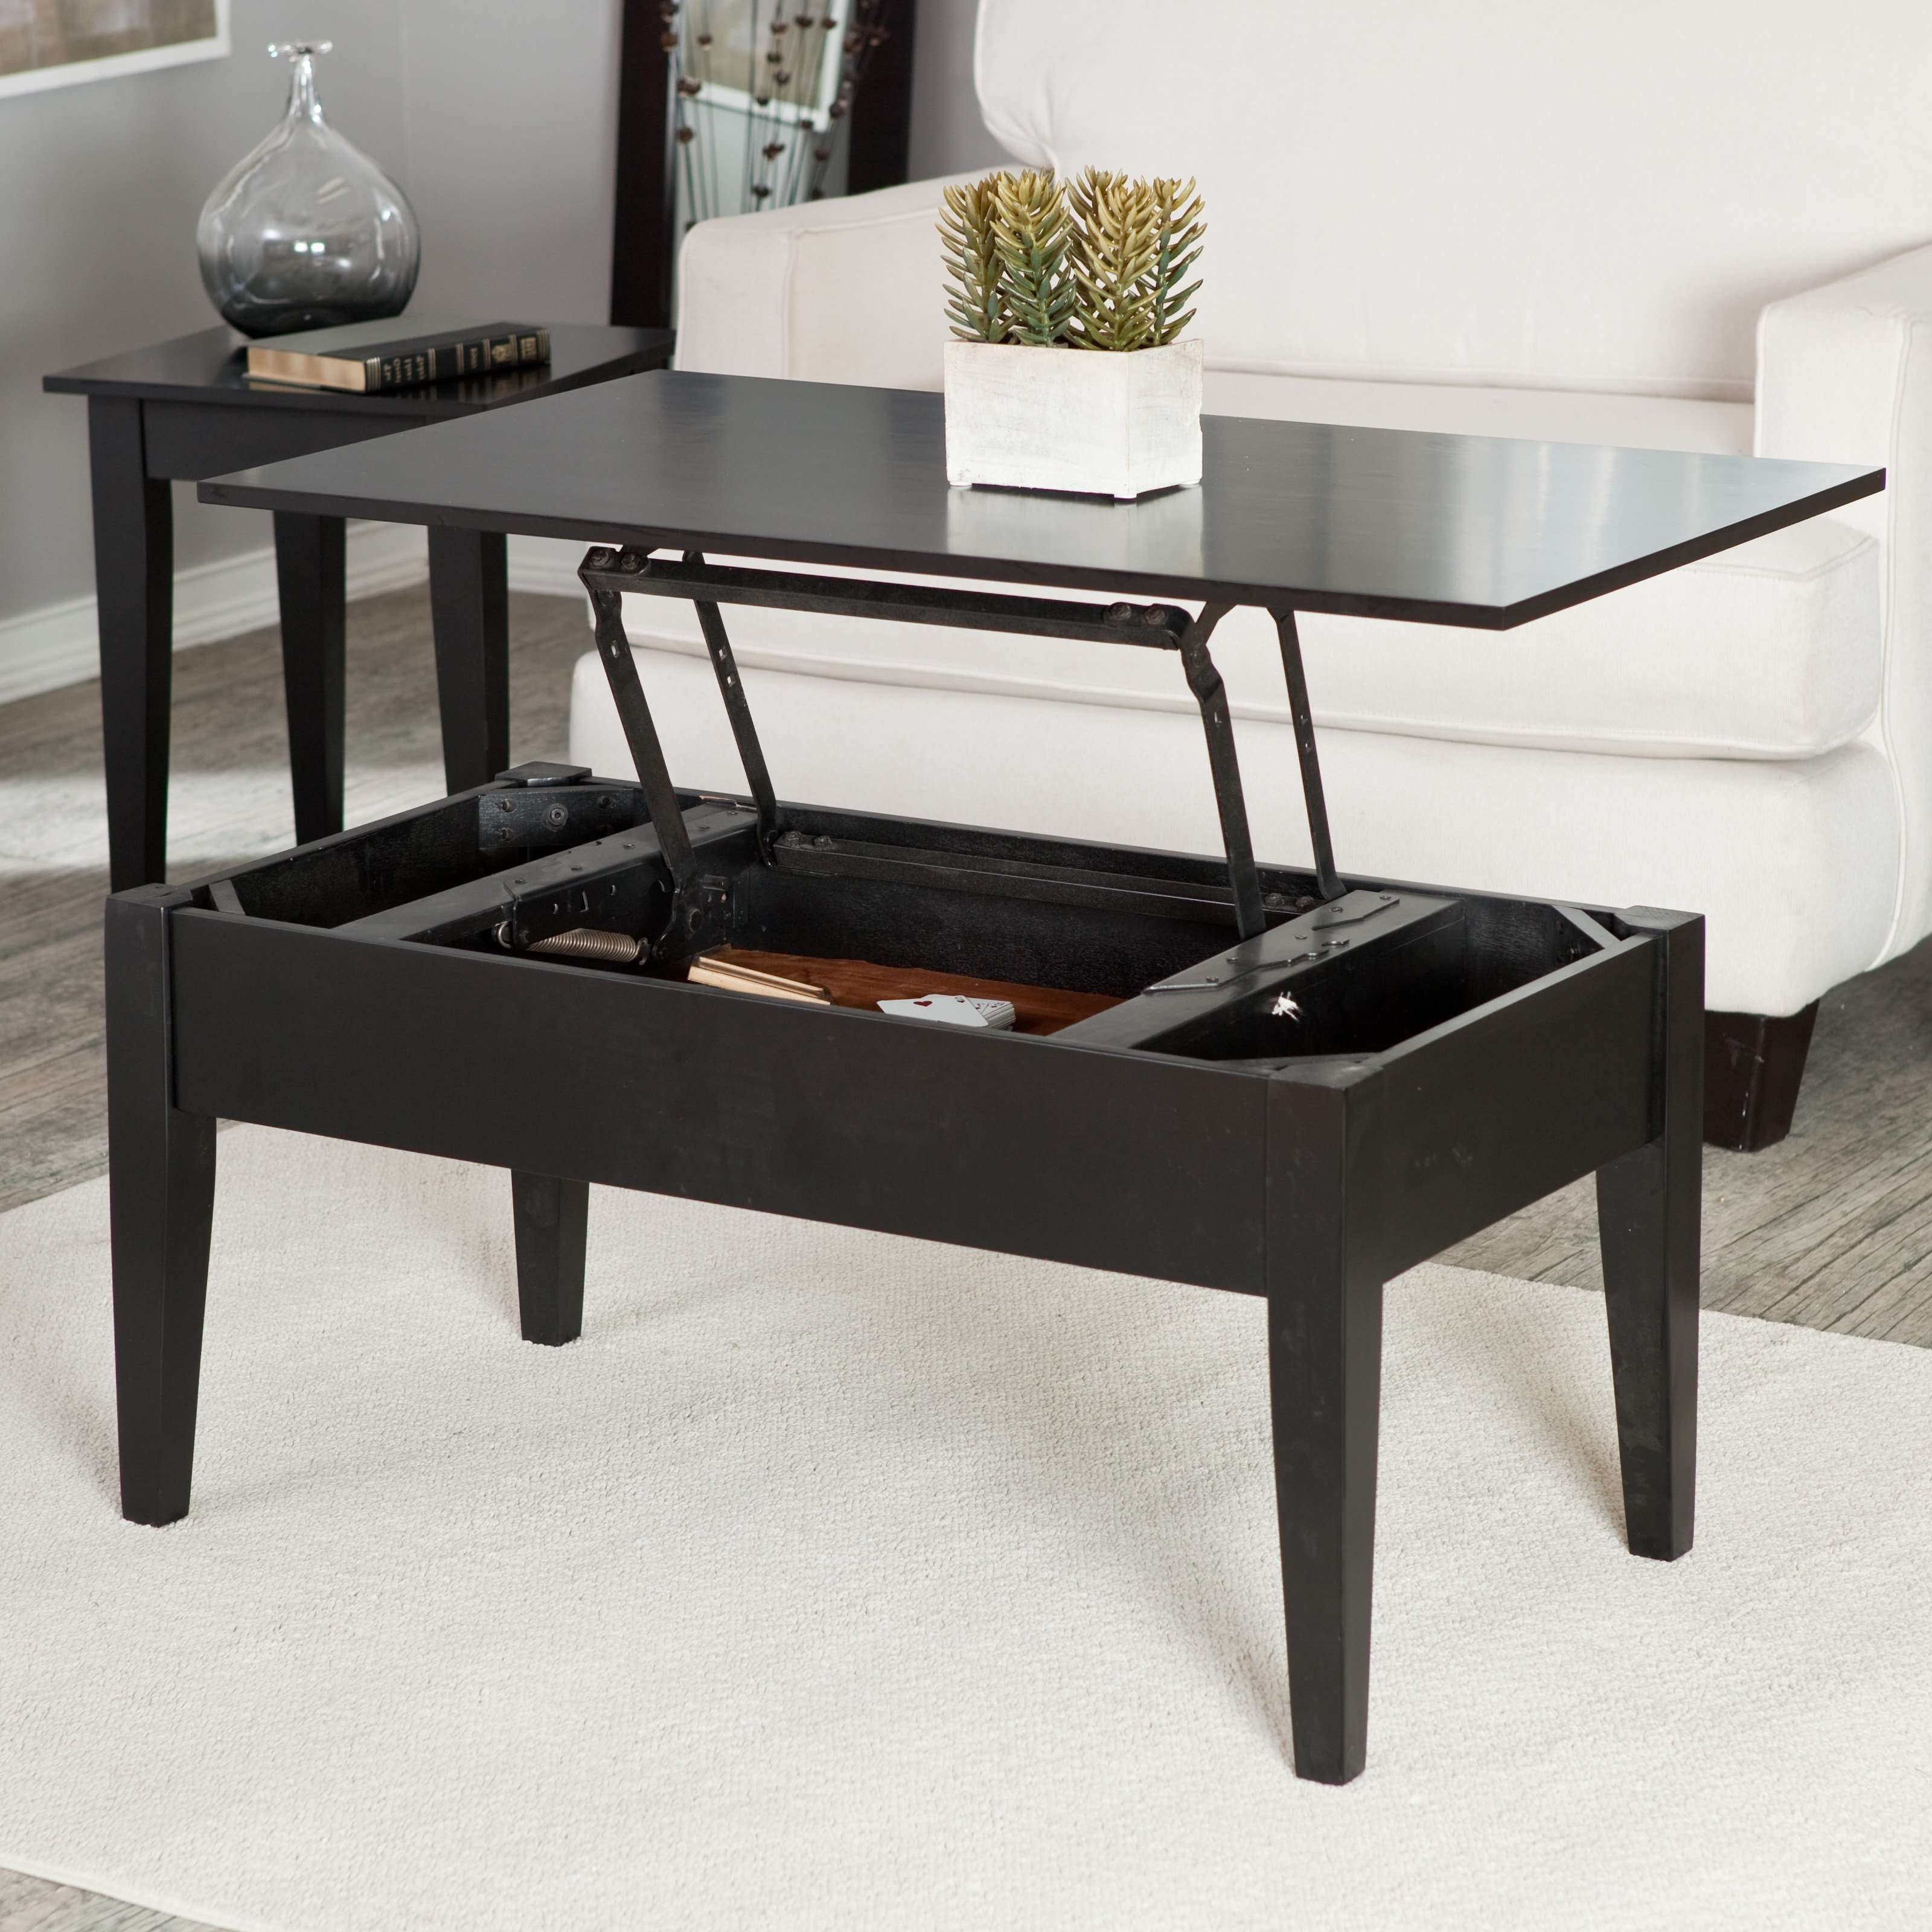 Hayneedle For Most Popular Lift Top Coffee Table Furniture (View 2 of 20)